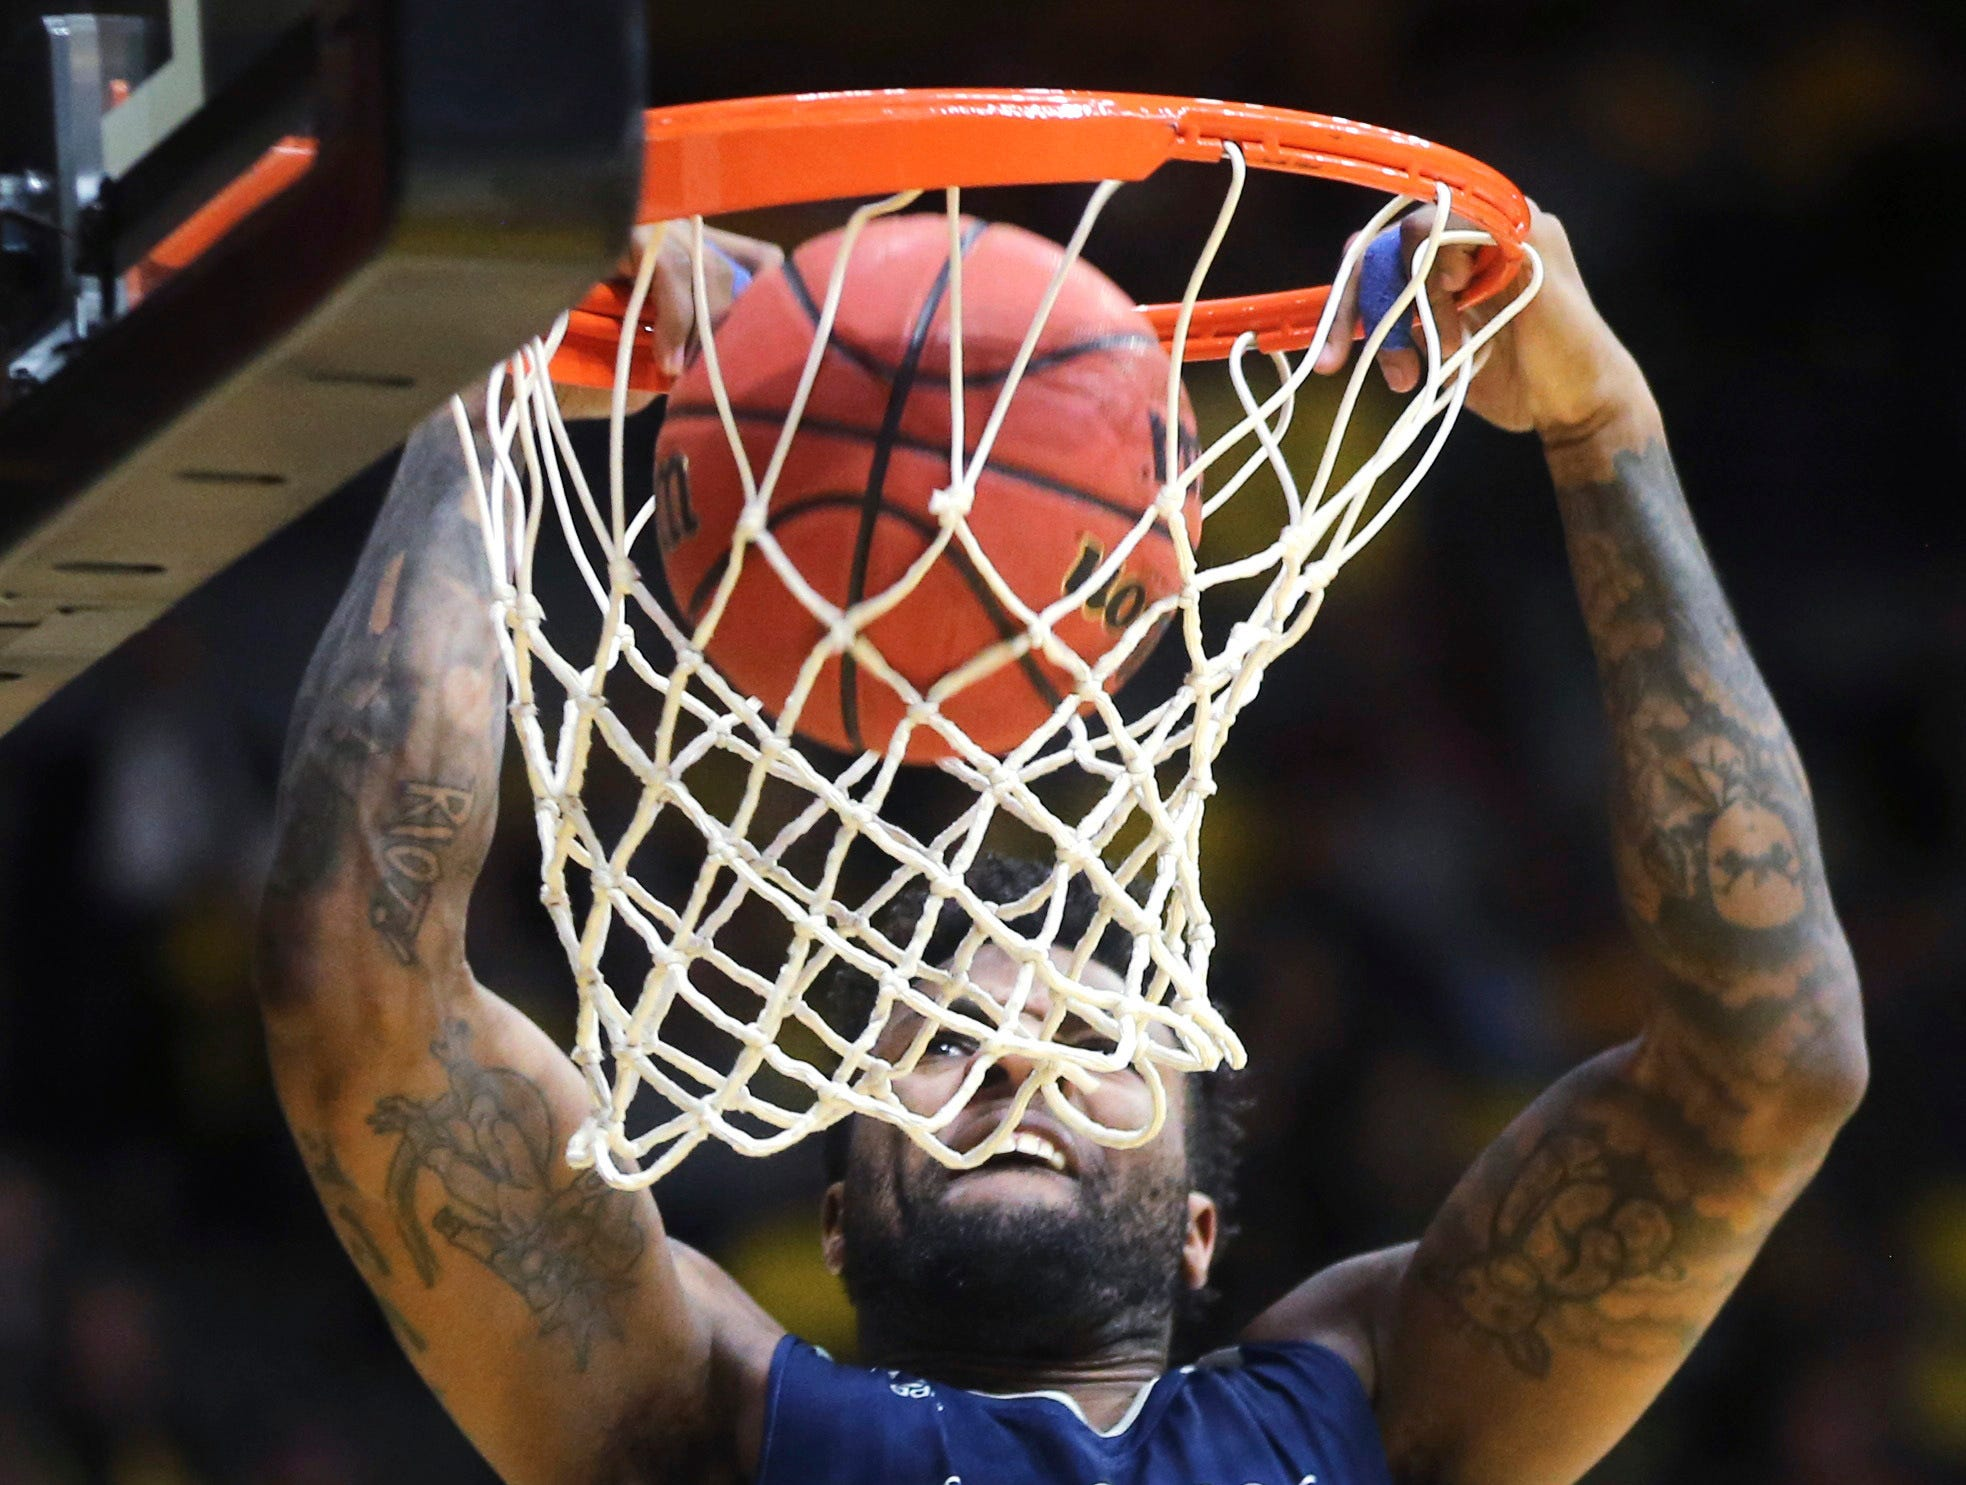 Nevada guard Jordan Caroline dunks during the first half of the team's basketball game against Wyoming on Saturday in Laramie, Wyo.